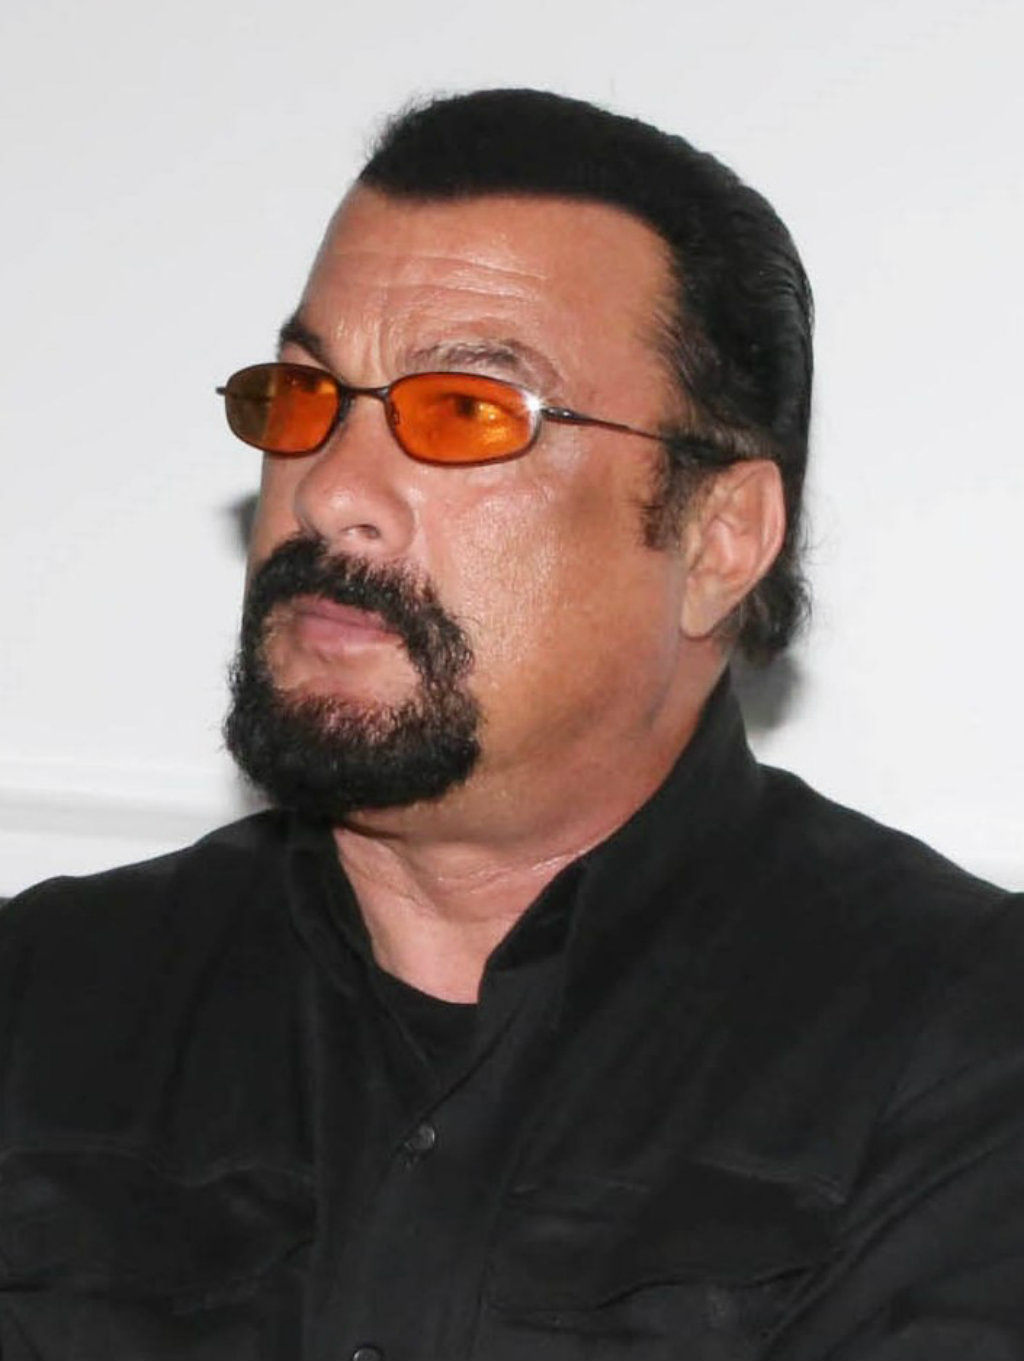 Serbia calls in action movie star Steven Seagal to train special forces